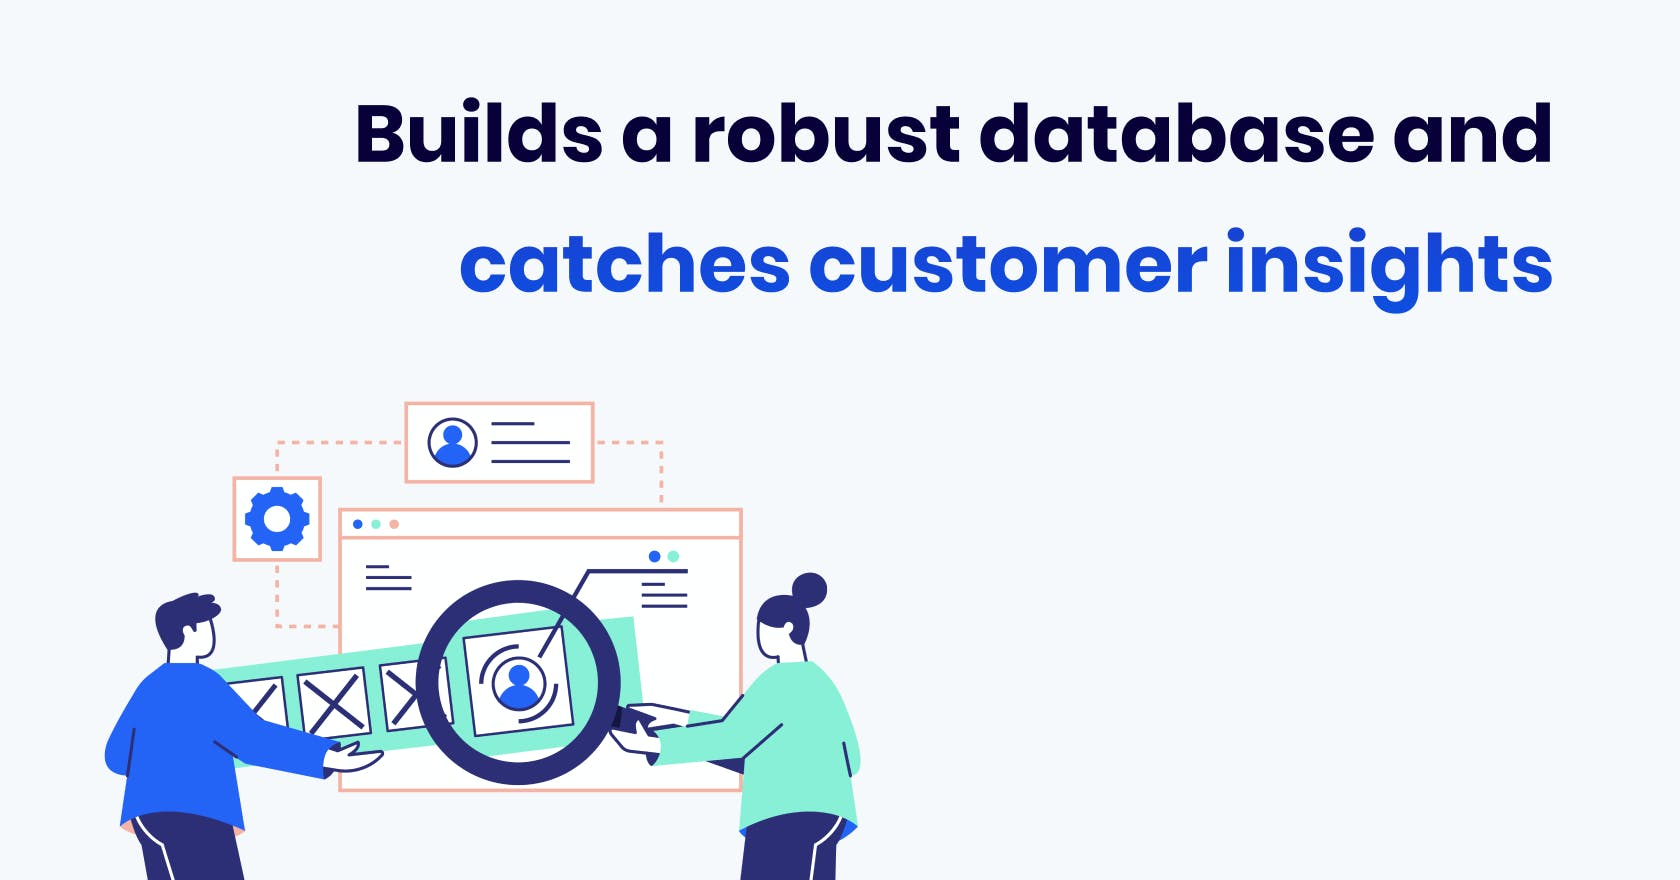 Nightborn - A mobile app builds a robust database and catches customer insights